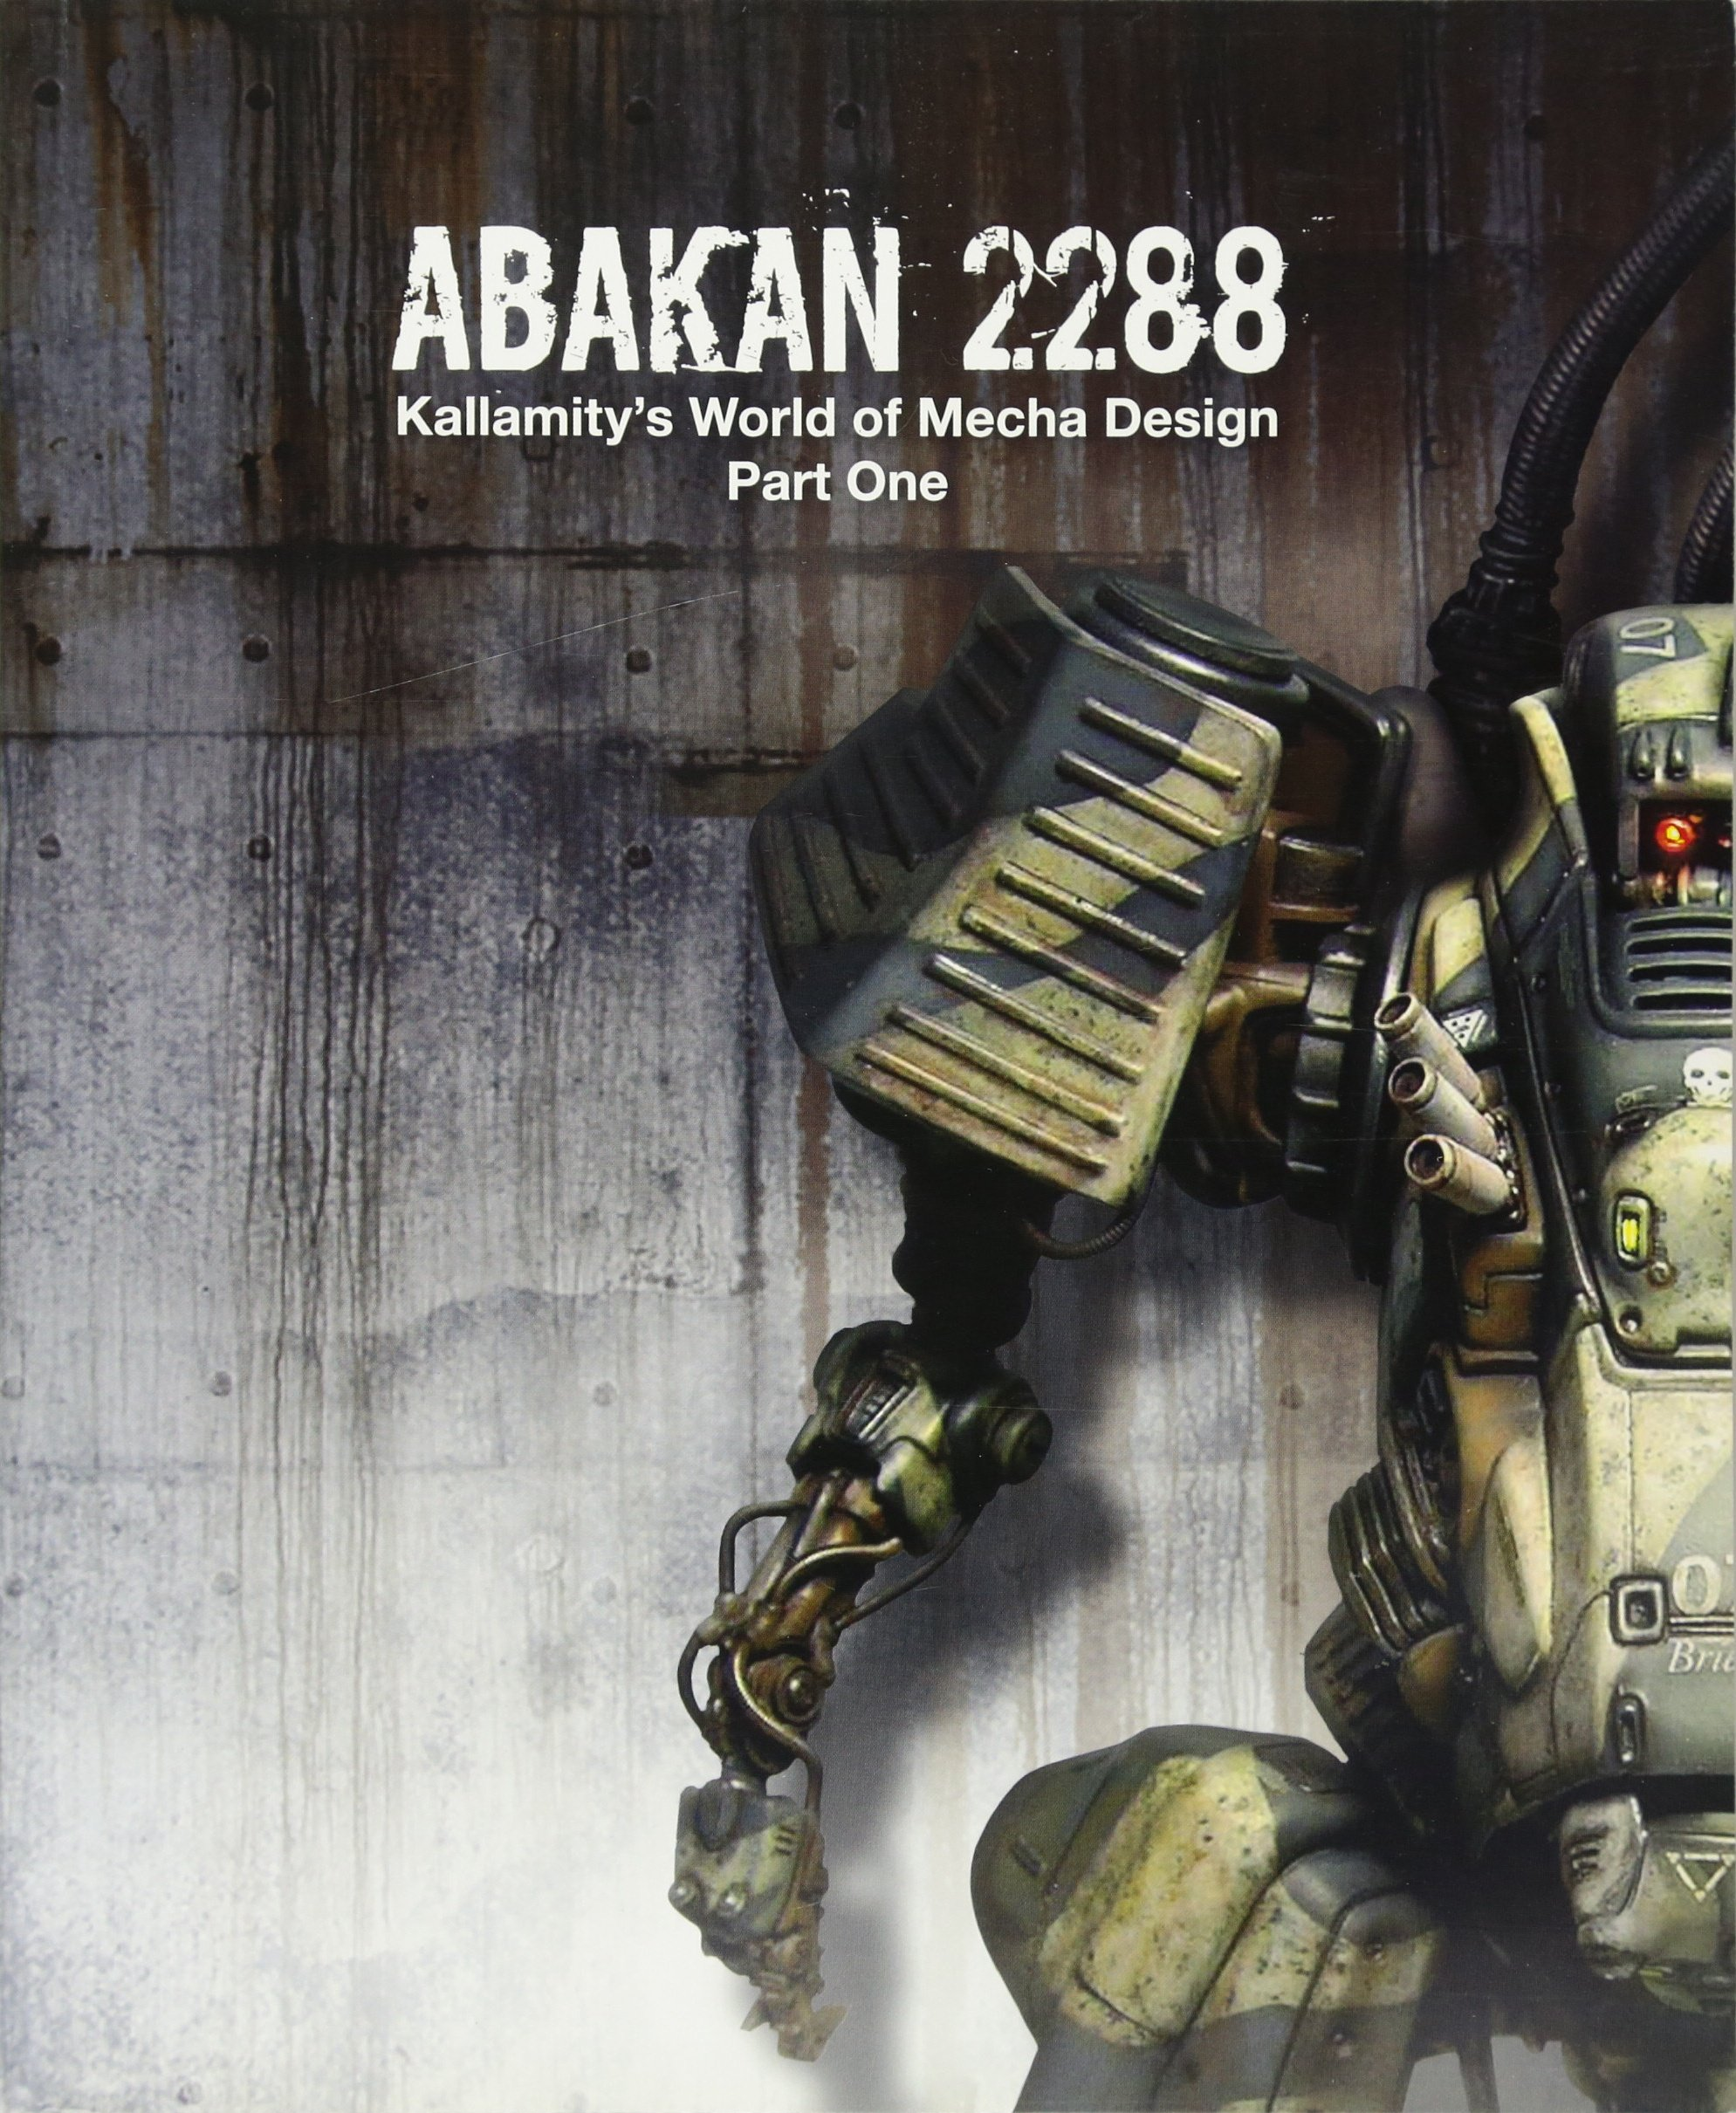 Book Preview: ABAKAN 2288: Kallamity's World of Mecha Design Part One